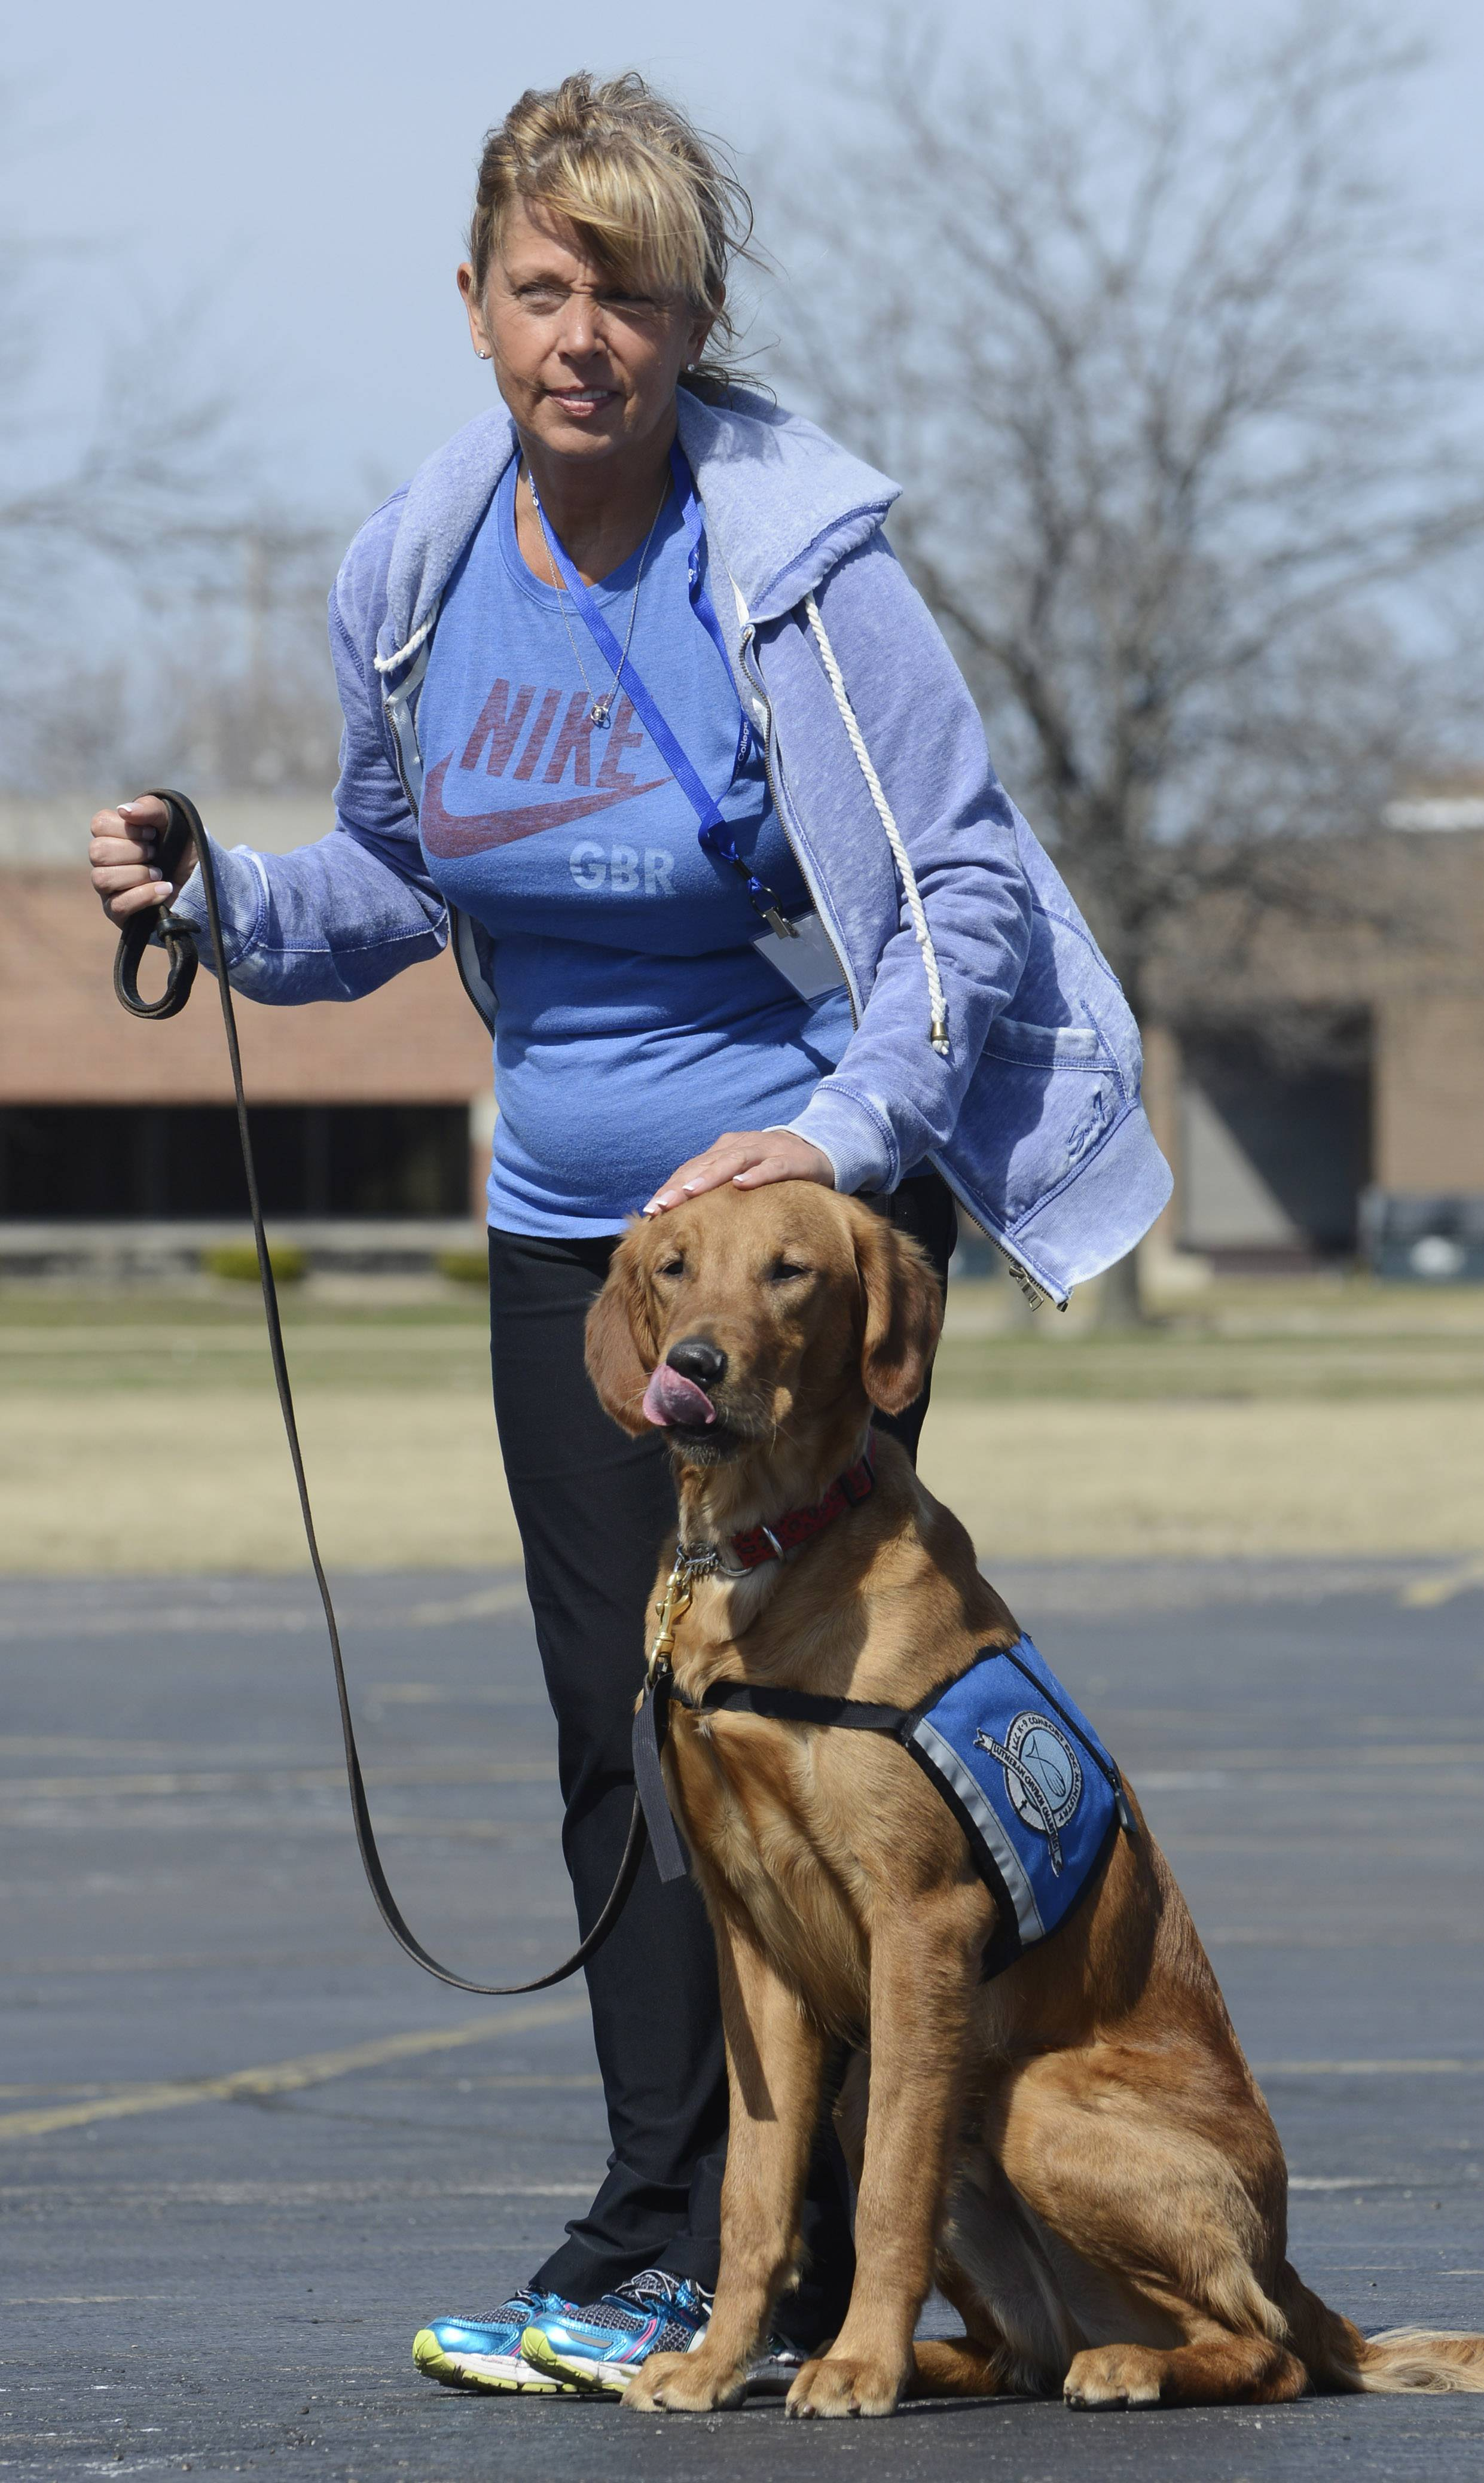 Linda Cecchi heaps praise on Martin, a newcomer to the comfort dog ranks.